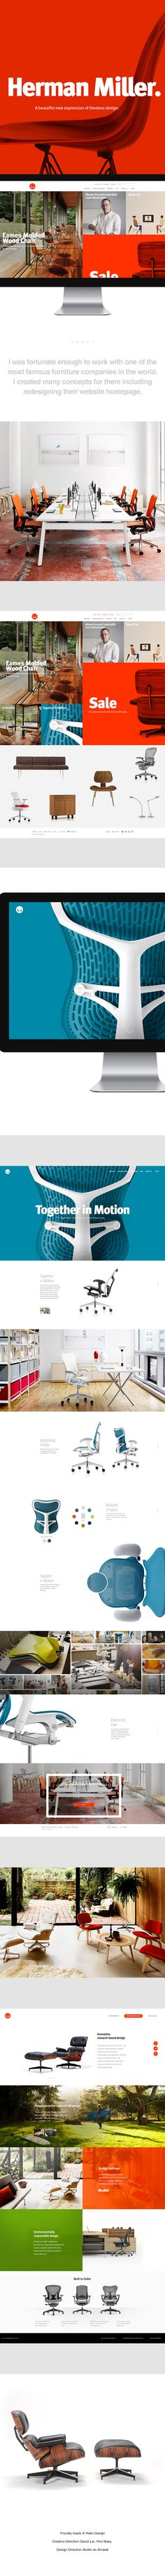 Herman Miller new proposal Ui redesign concept by Adre do Amaral on Behance.